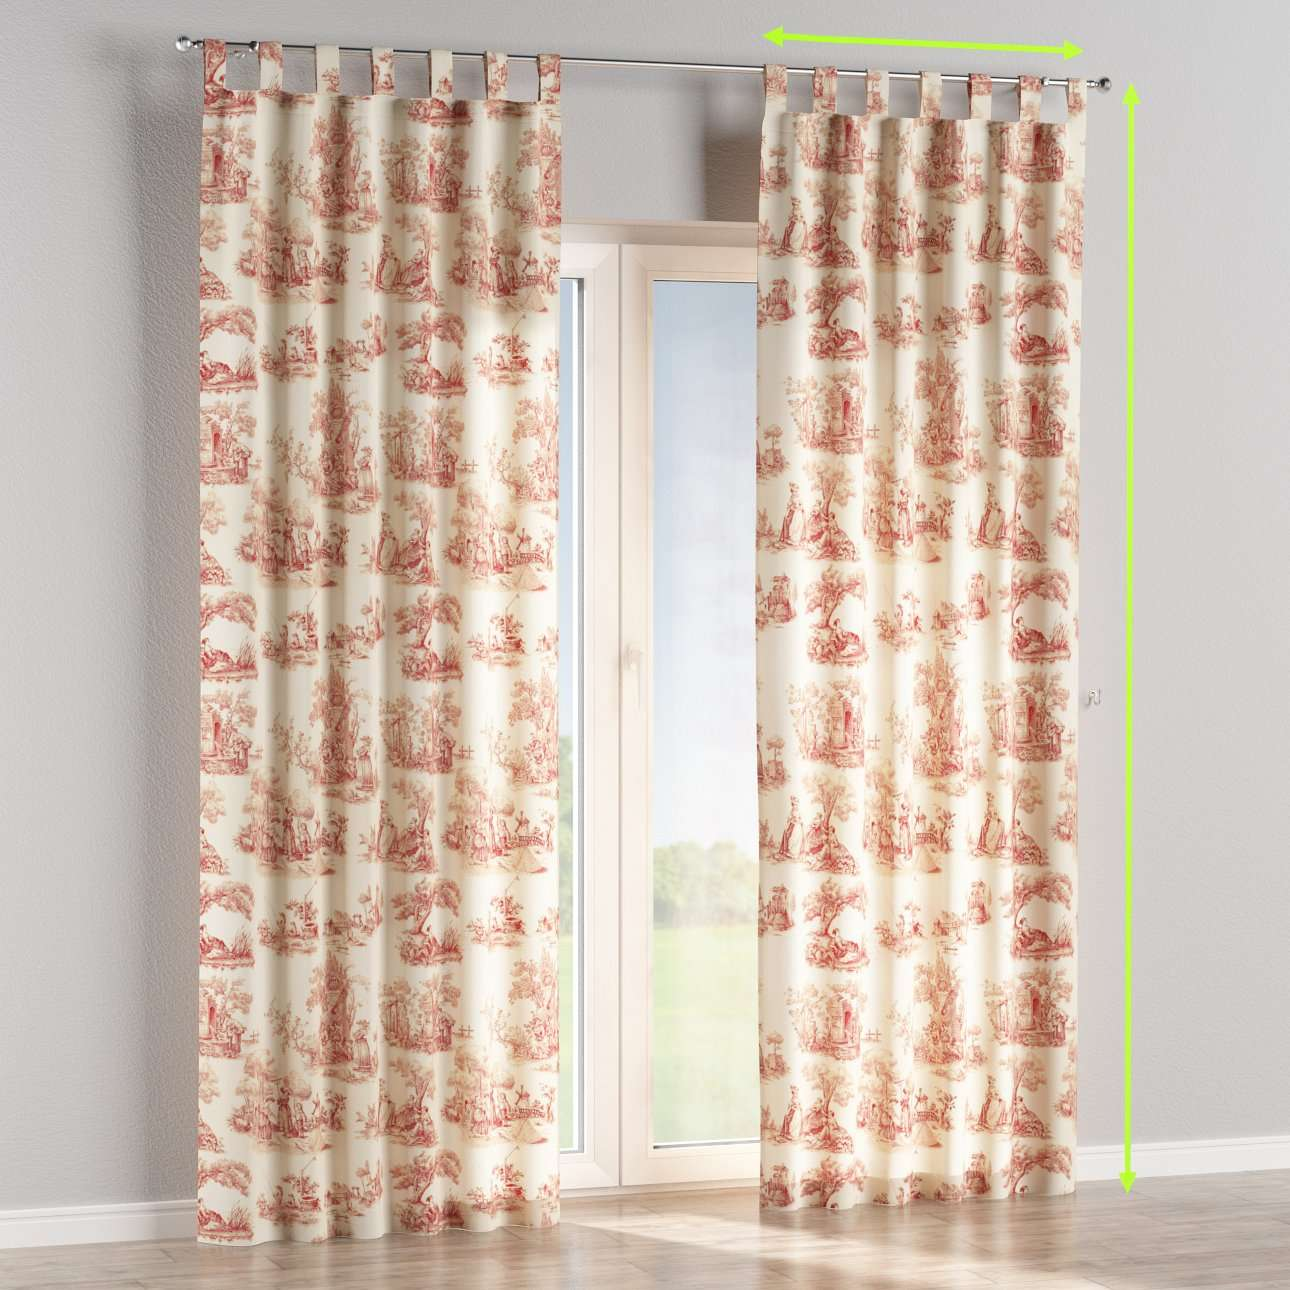 Tab top curtains in collection Avinon, fabric: 132-15